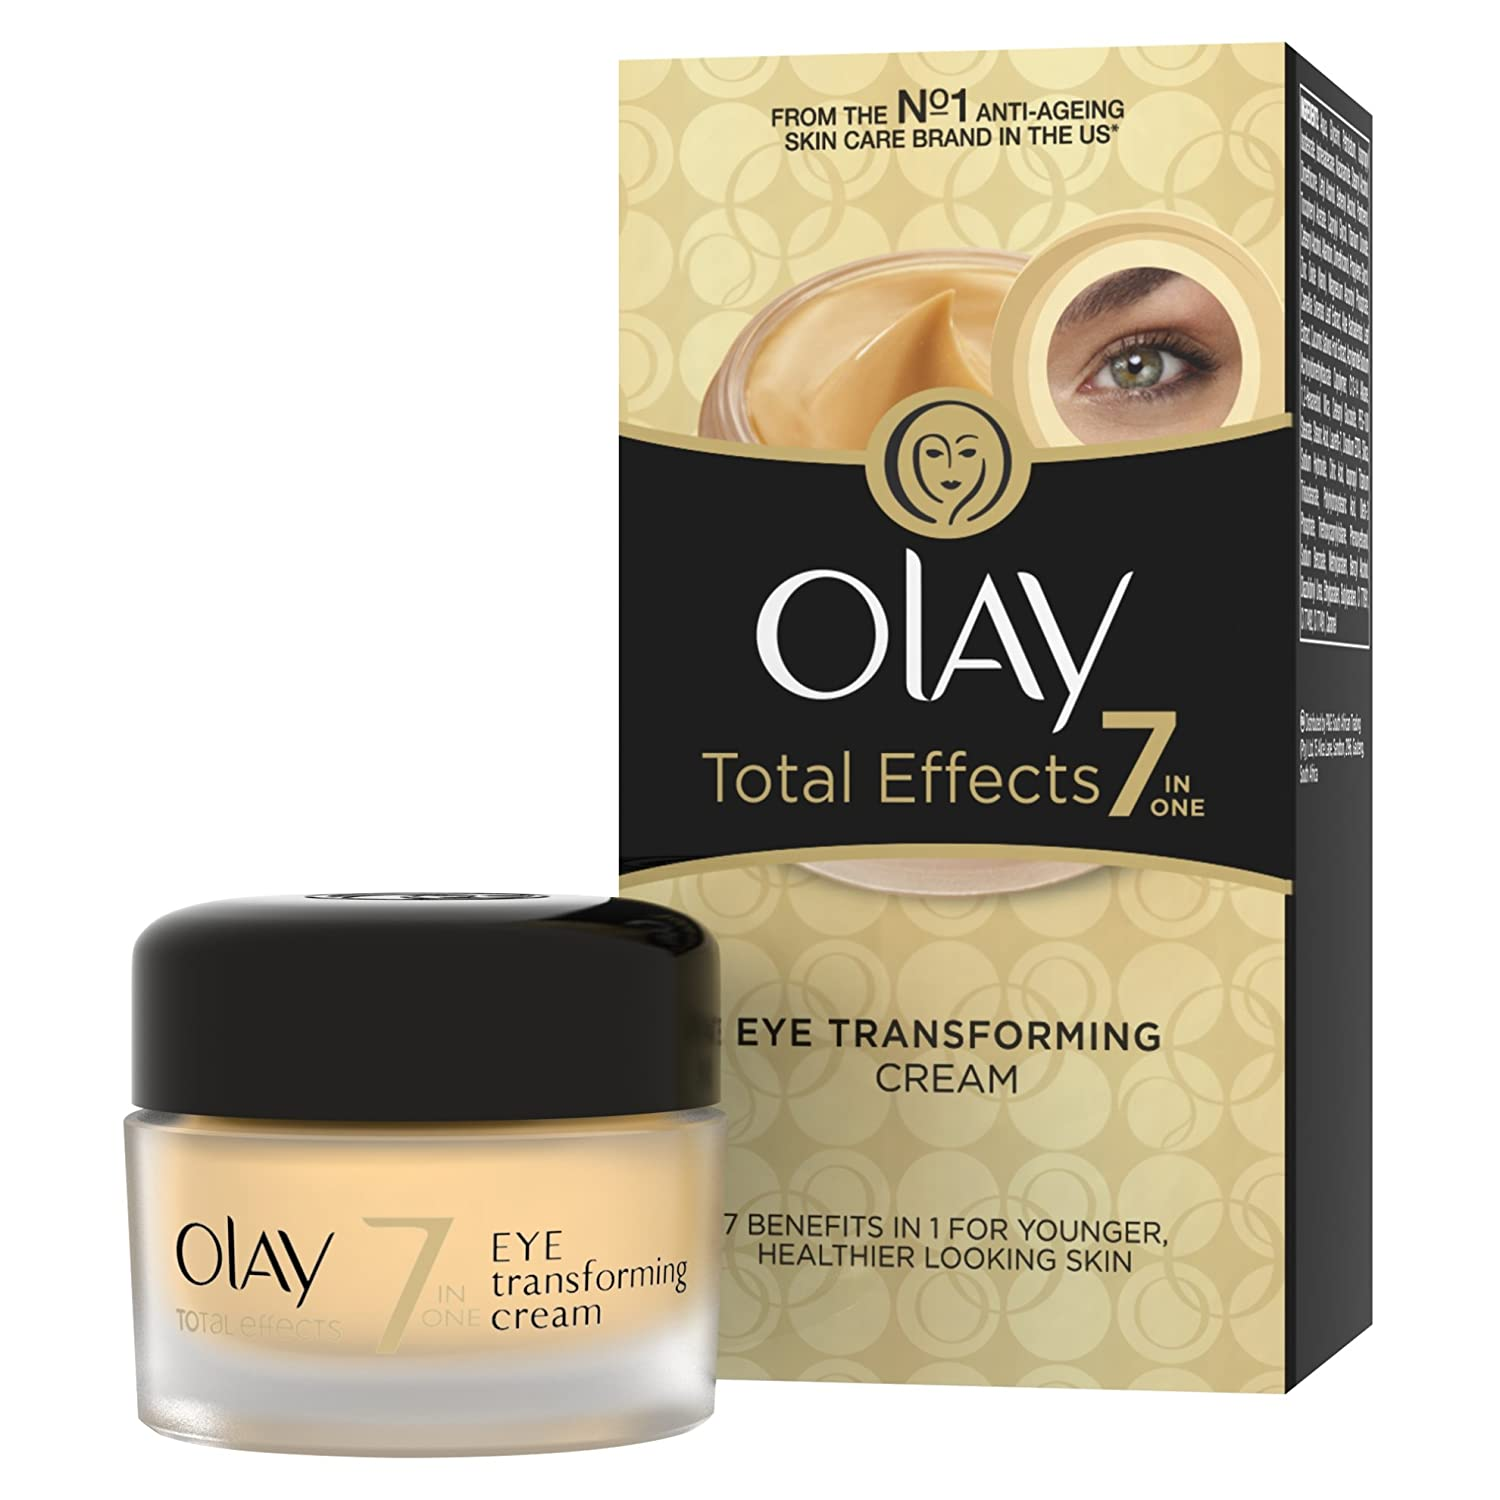 OLAY Total Effects Anti-Aging Eye Transforming Cream 0.5 oz Gerber Toddler Tooth And Gum Cleanser - 1.4 Oz, 2 Pack